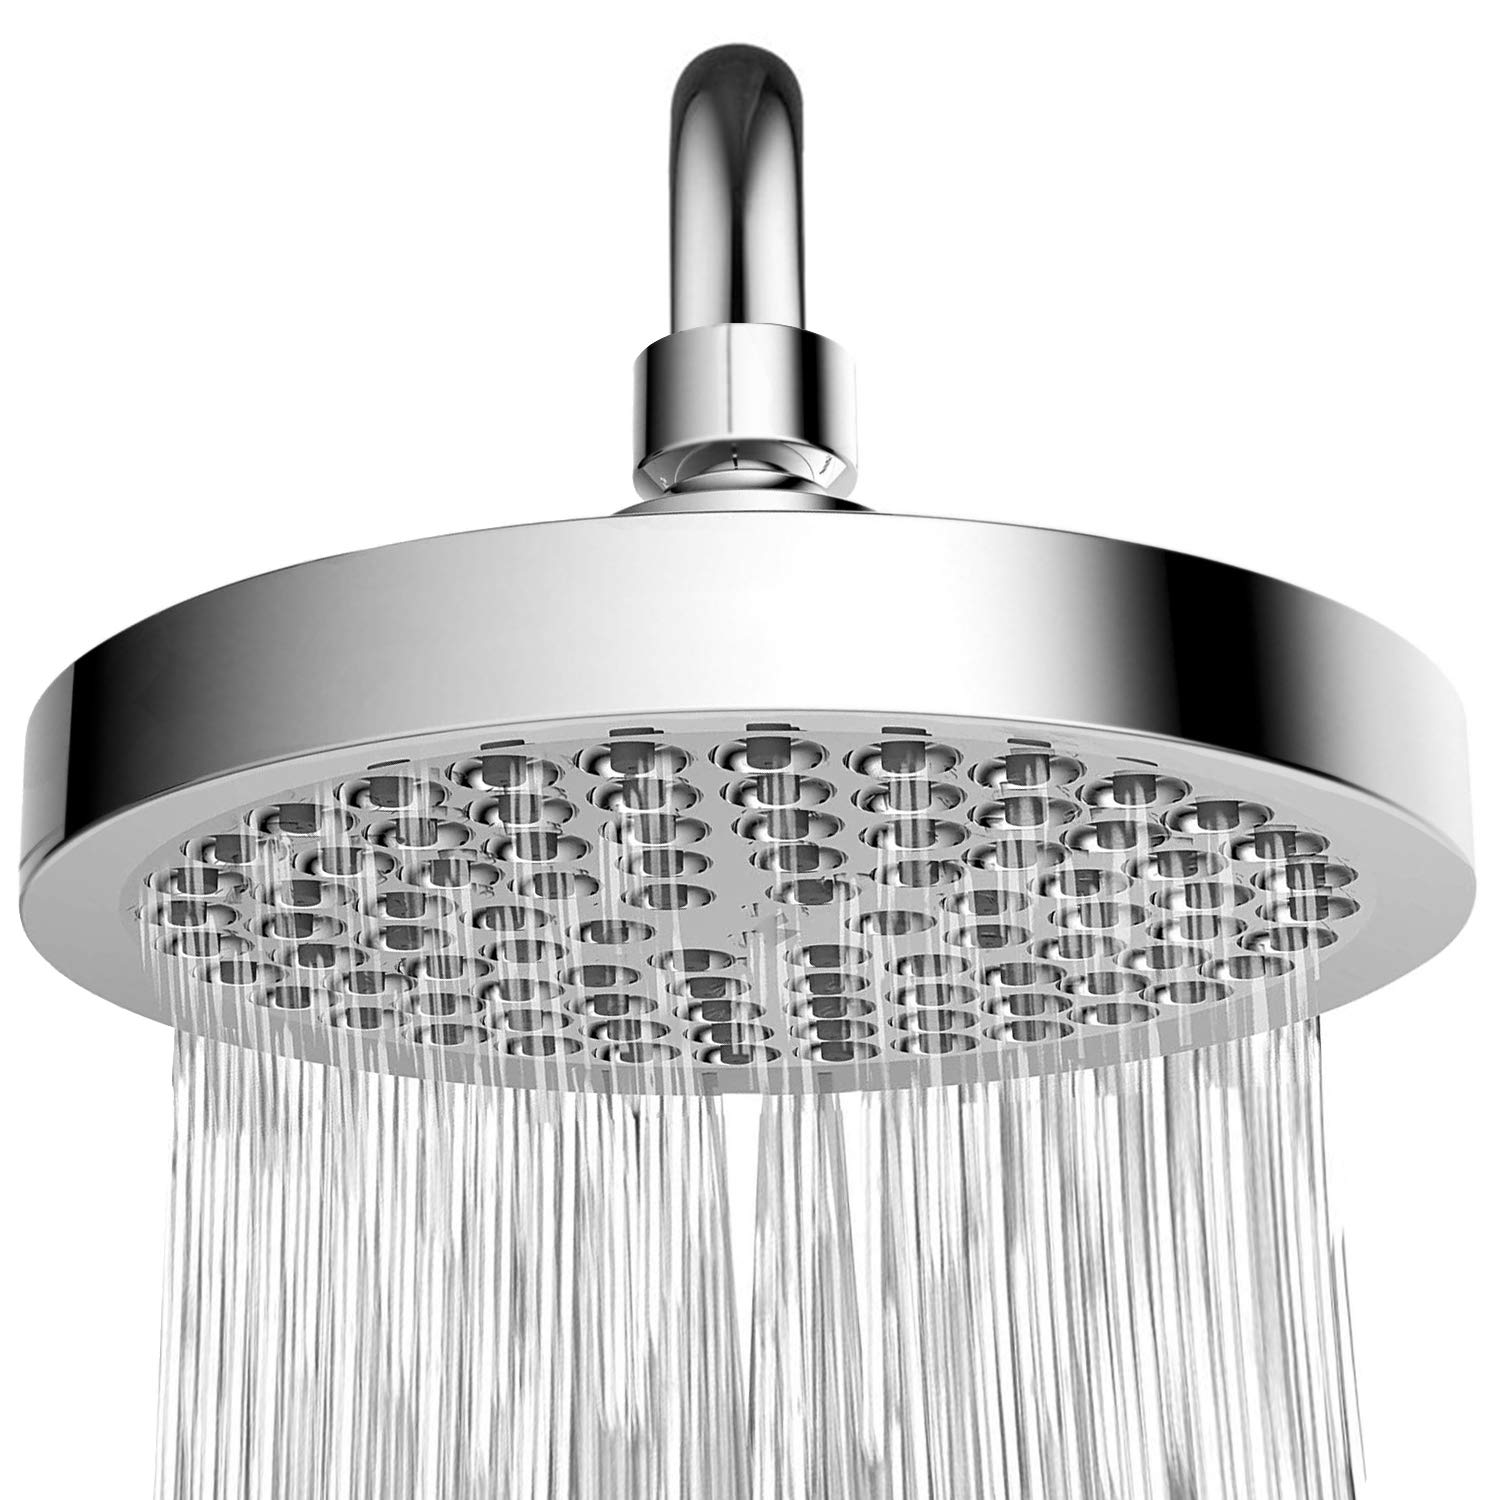 Awesome shower head